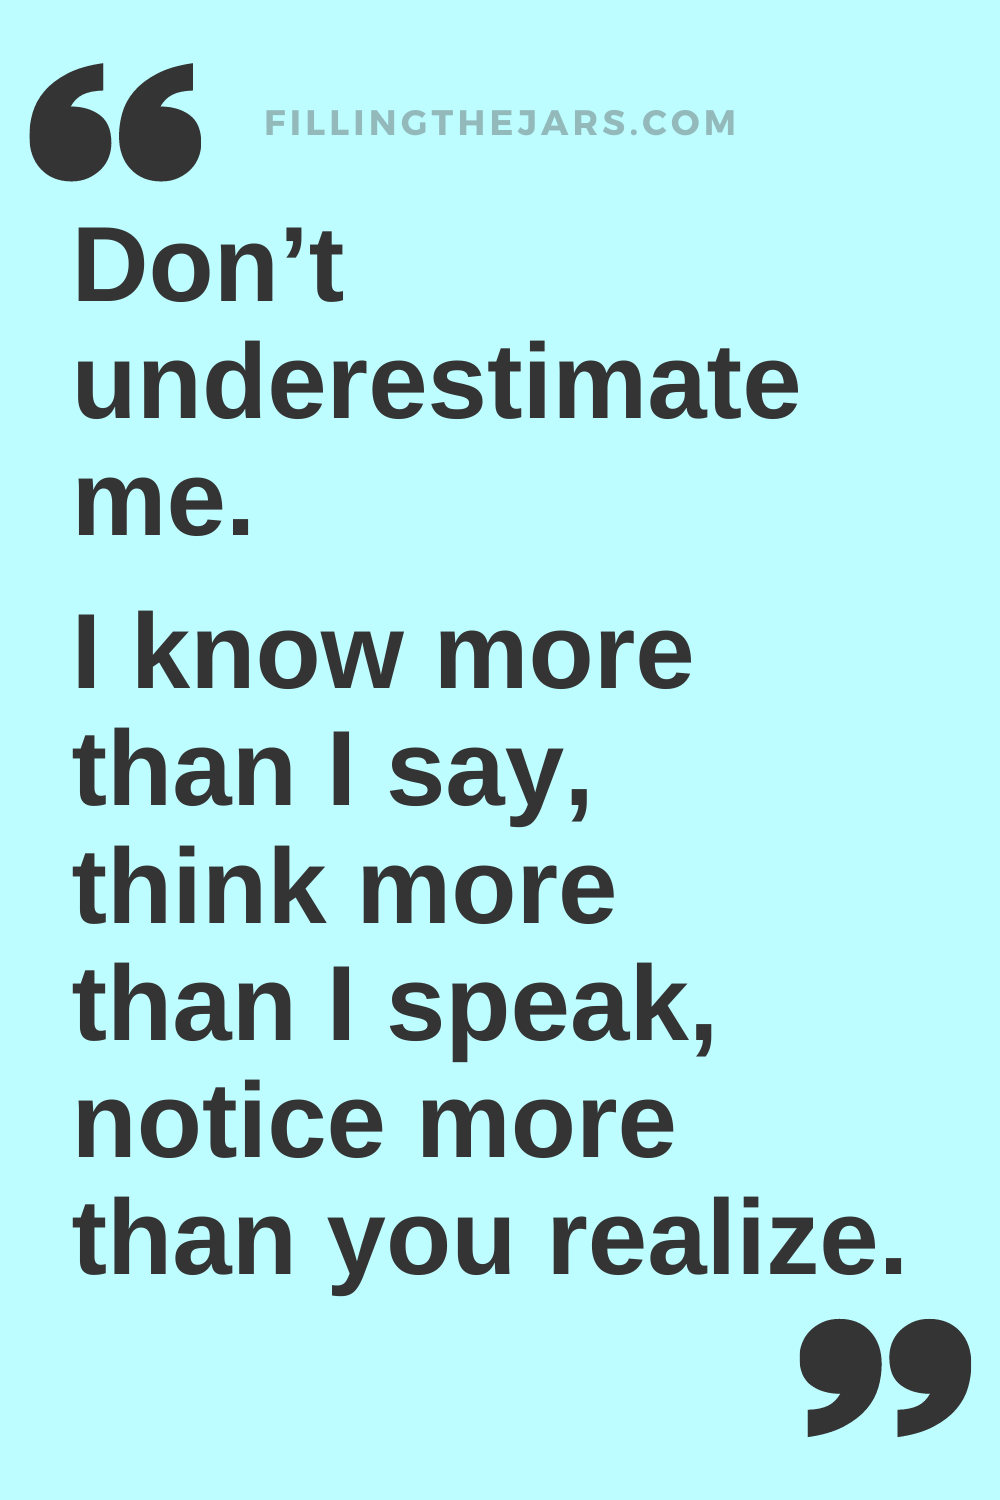 Don't underestimate me - confident woman quote in black text on light blue background.